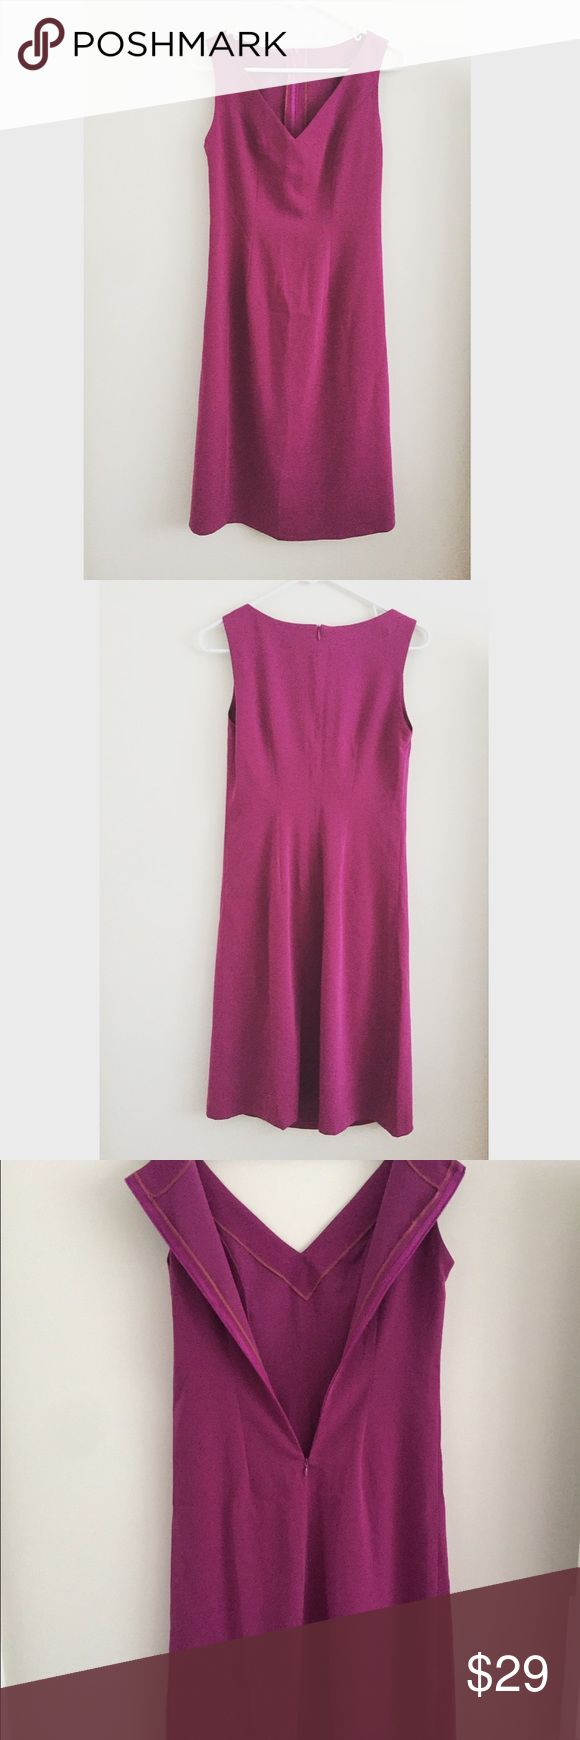 Purple dress Classic purple fitted dress. Perfect for any occasion. Can be dressed up for a night out or worn to work! Fits a size medium. Dresses